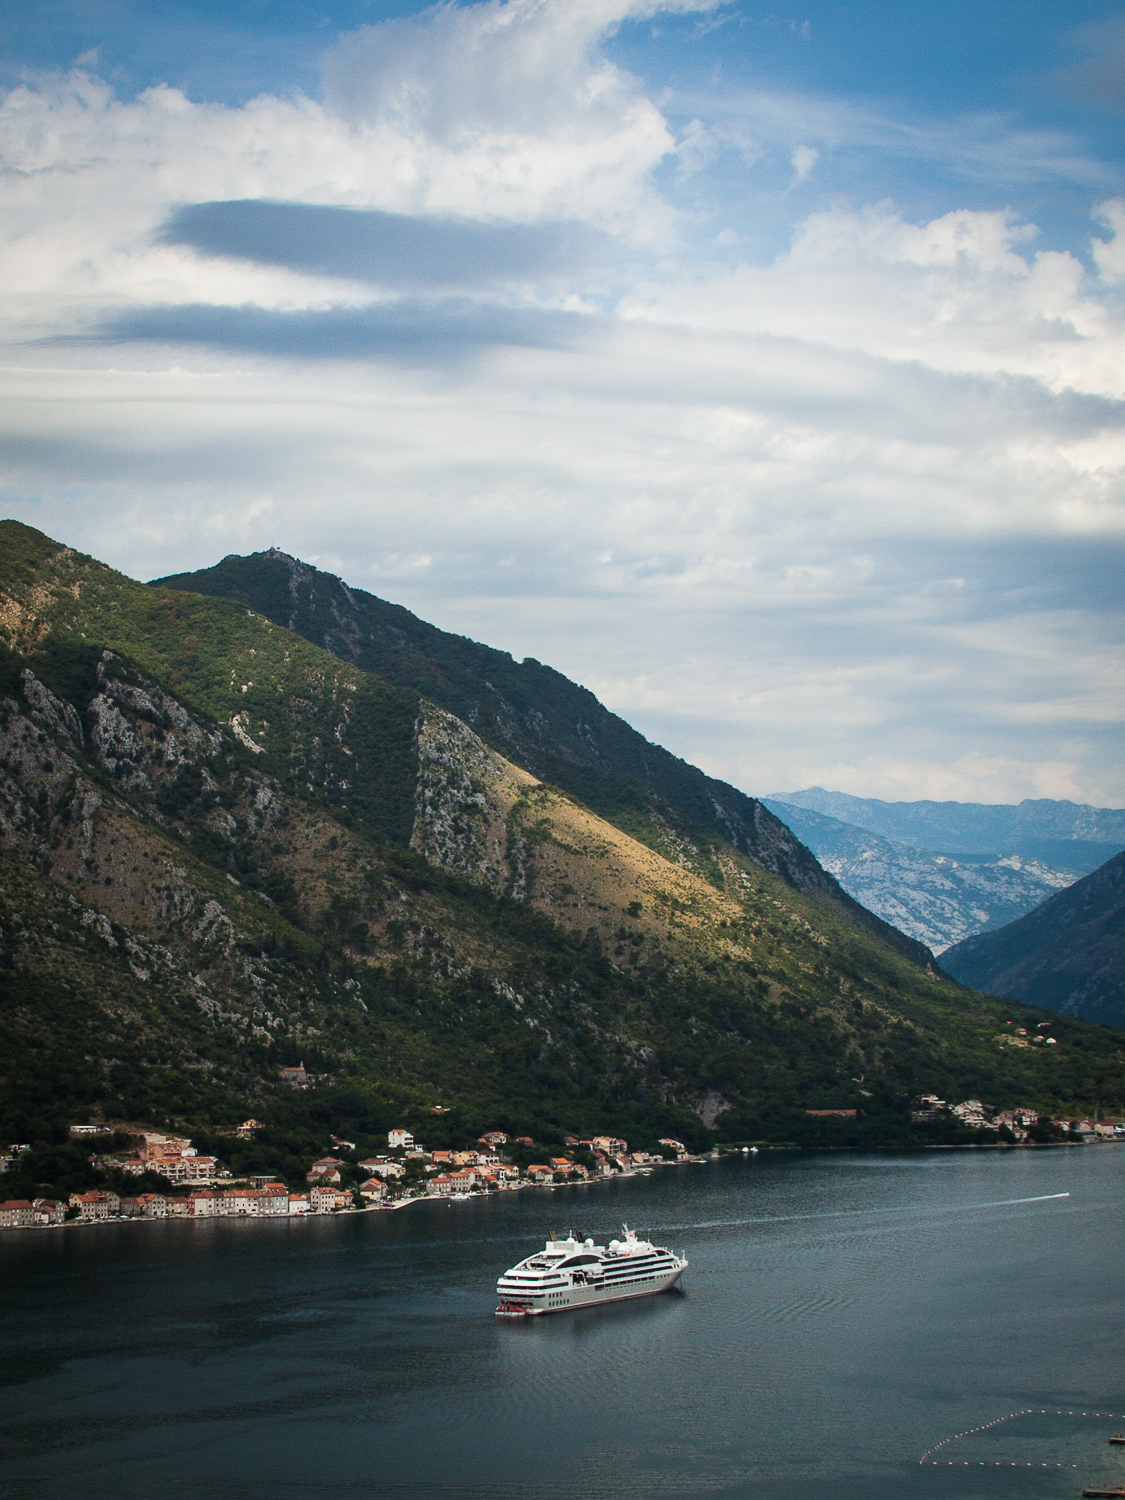 Surrounded by the mountains of Kotor